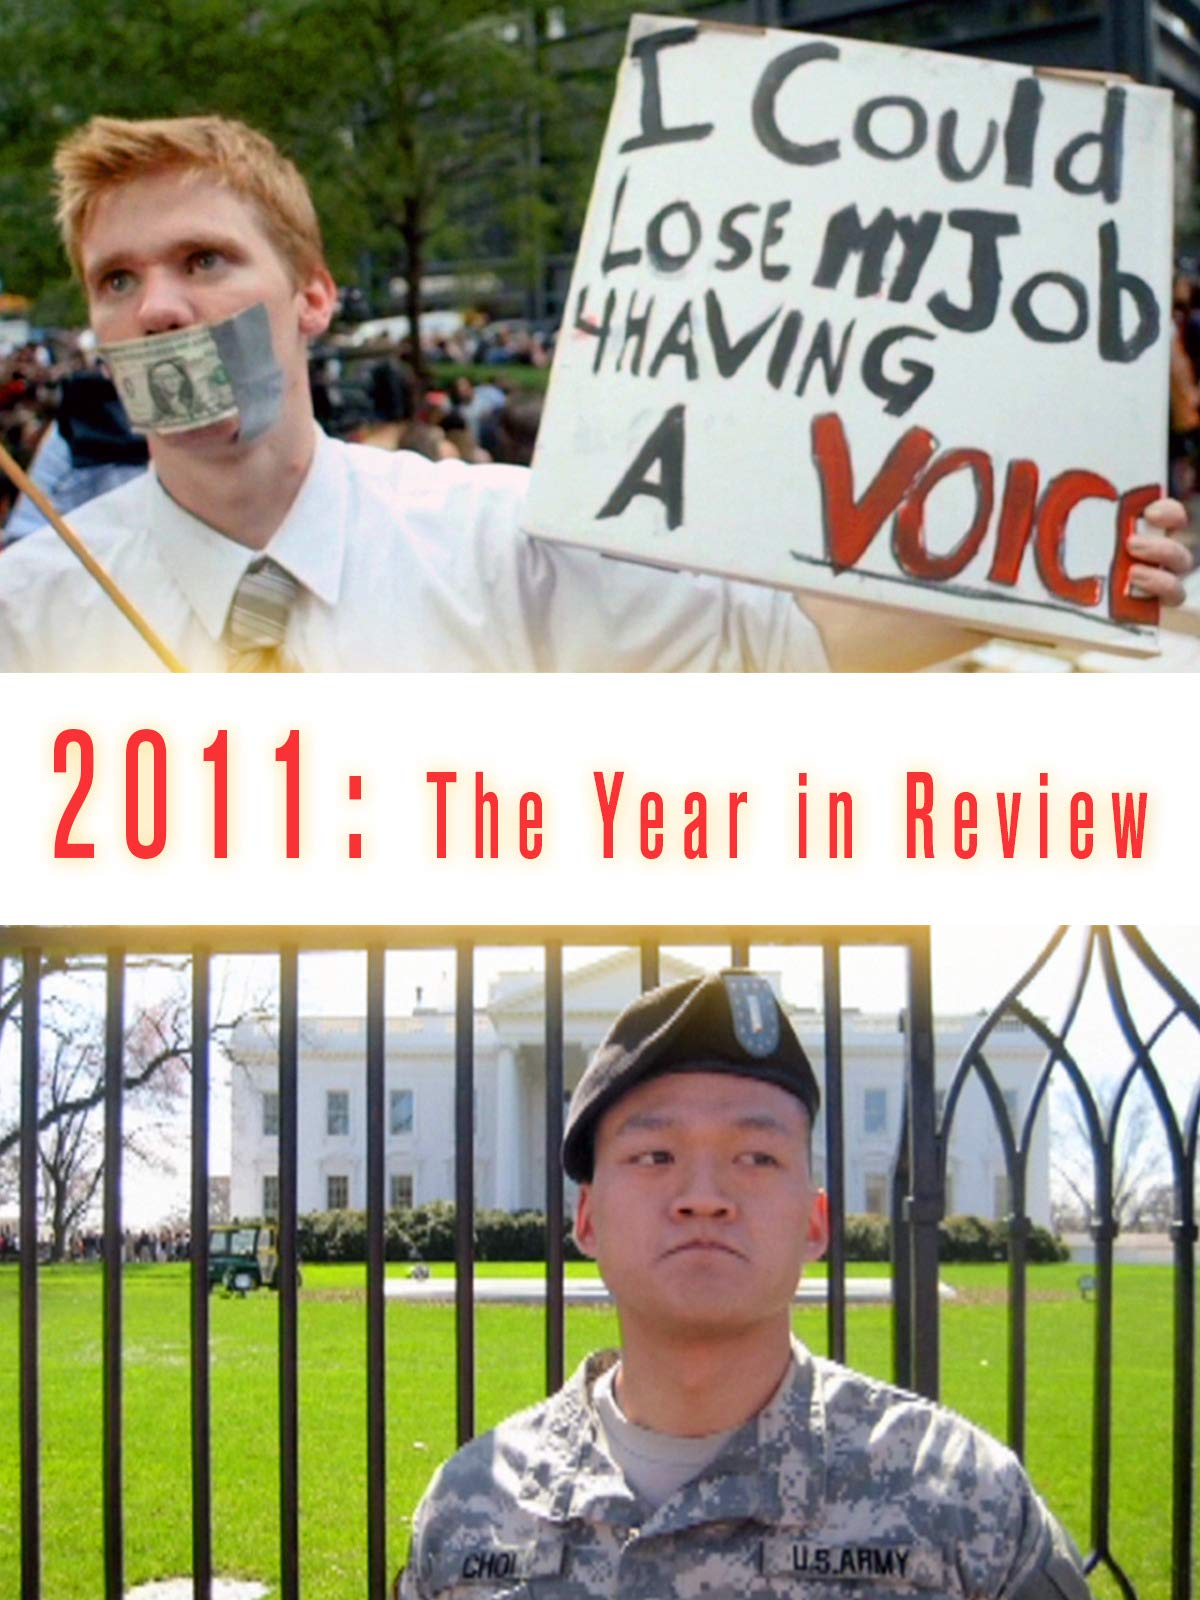 2011: The Year in Review